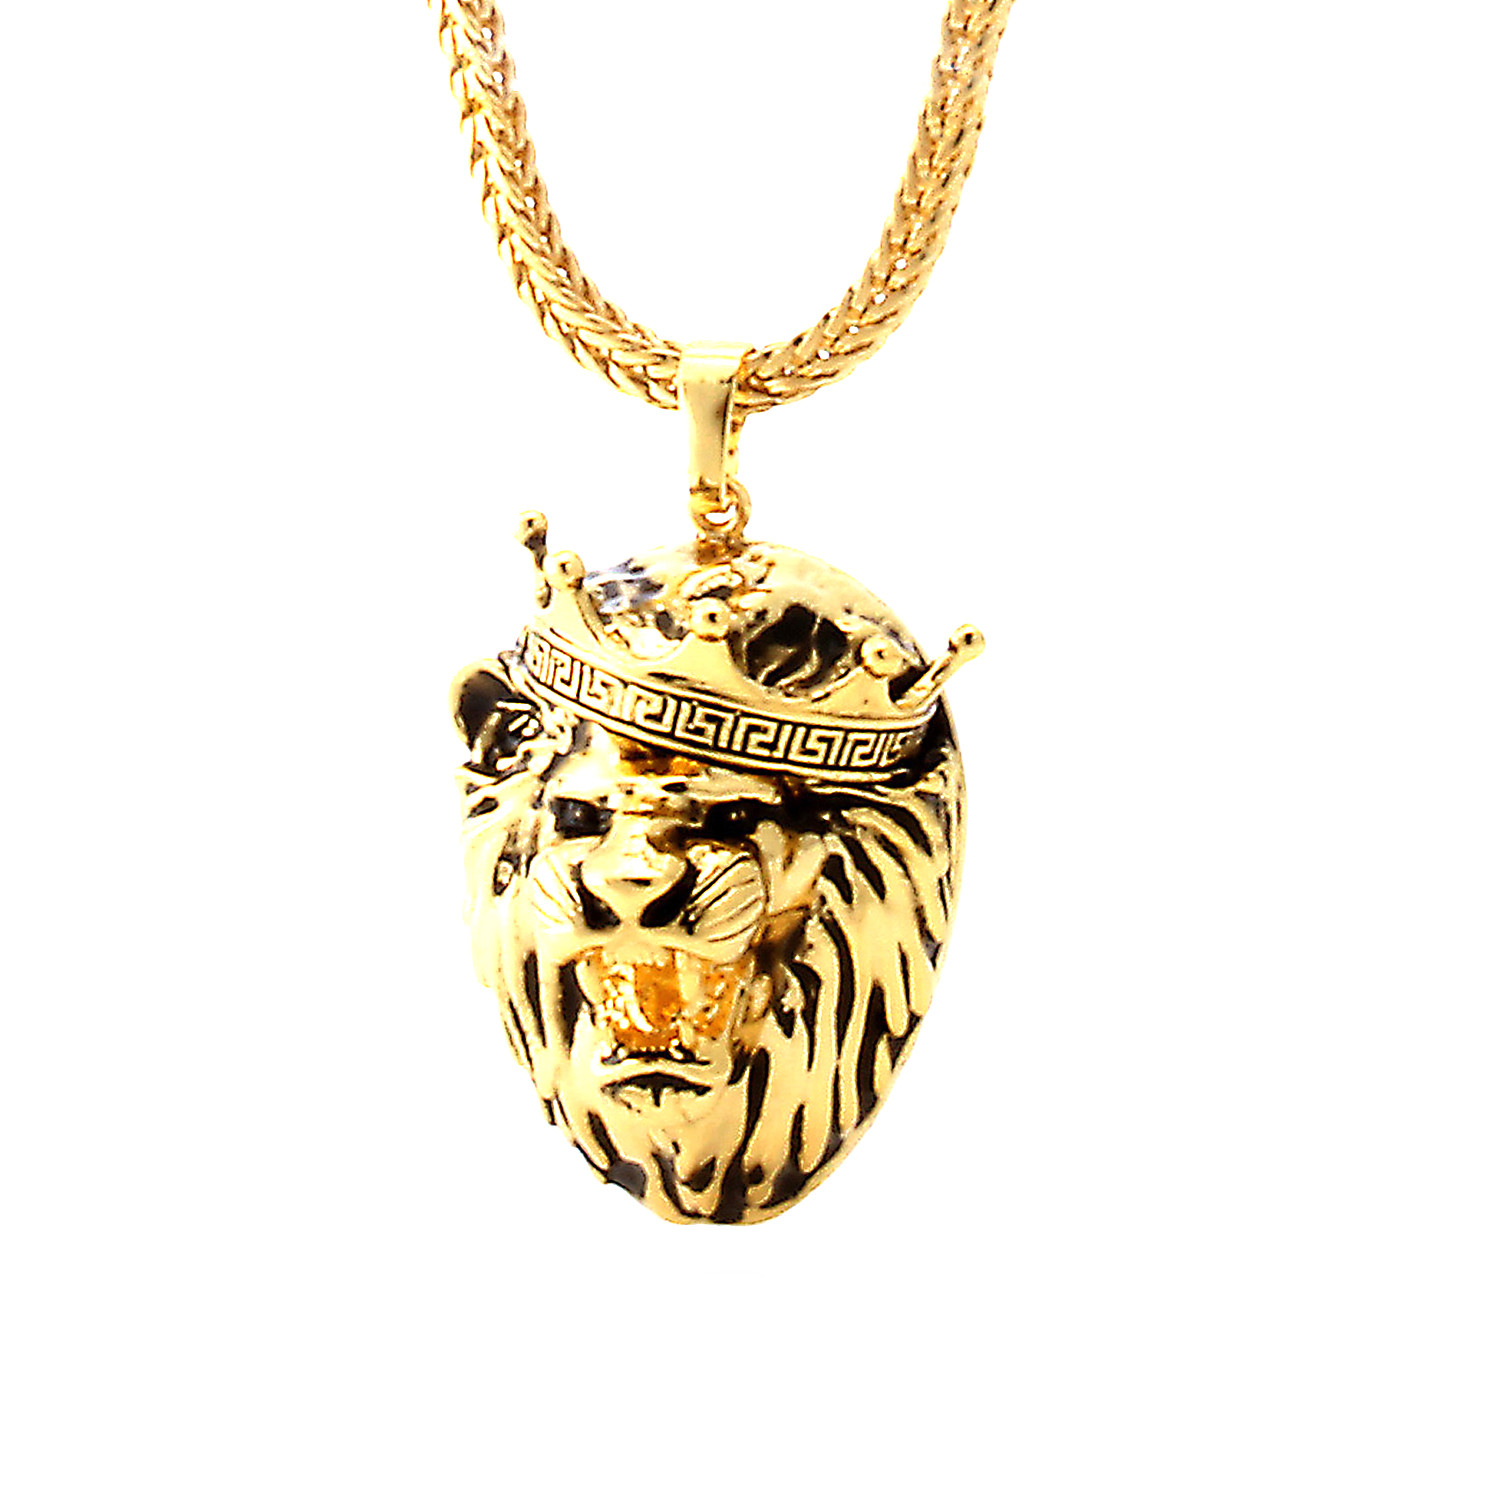 matching stainless lion chain necklace head p steel of gold s mens tone pendant w picture